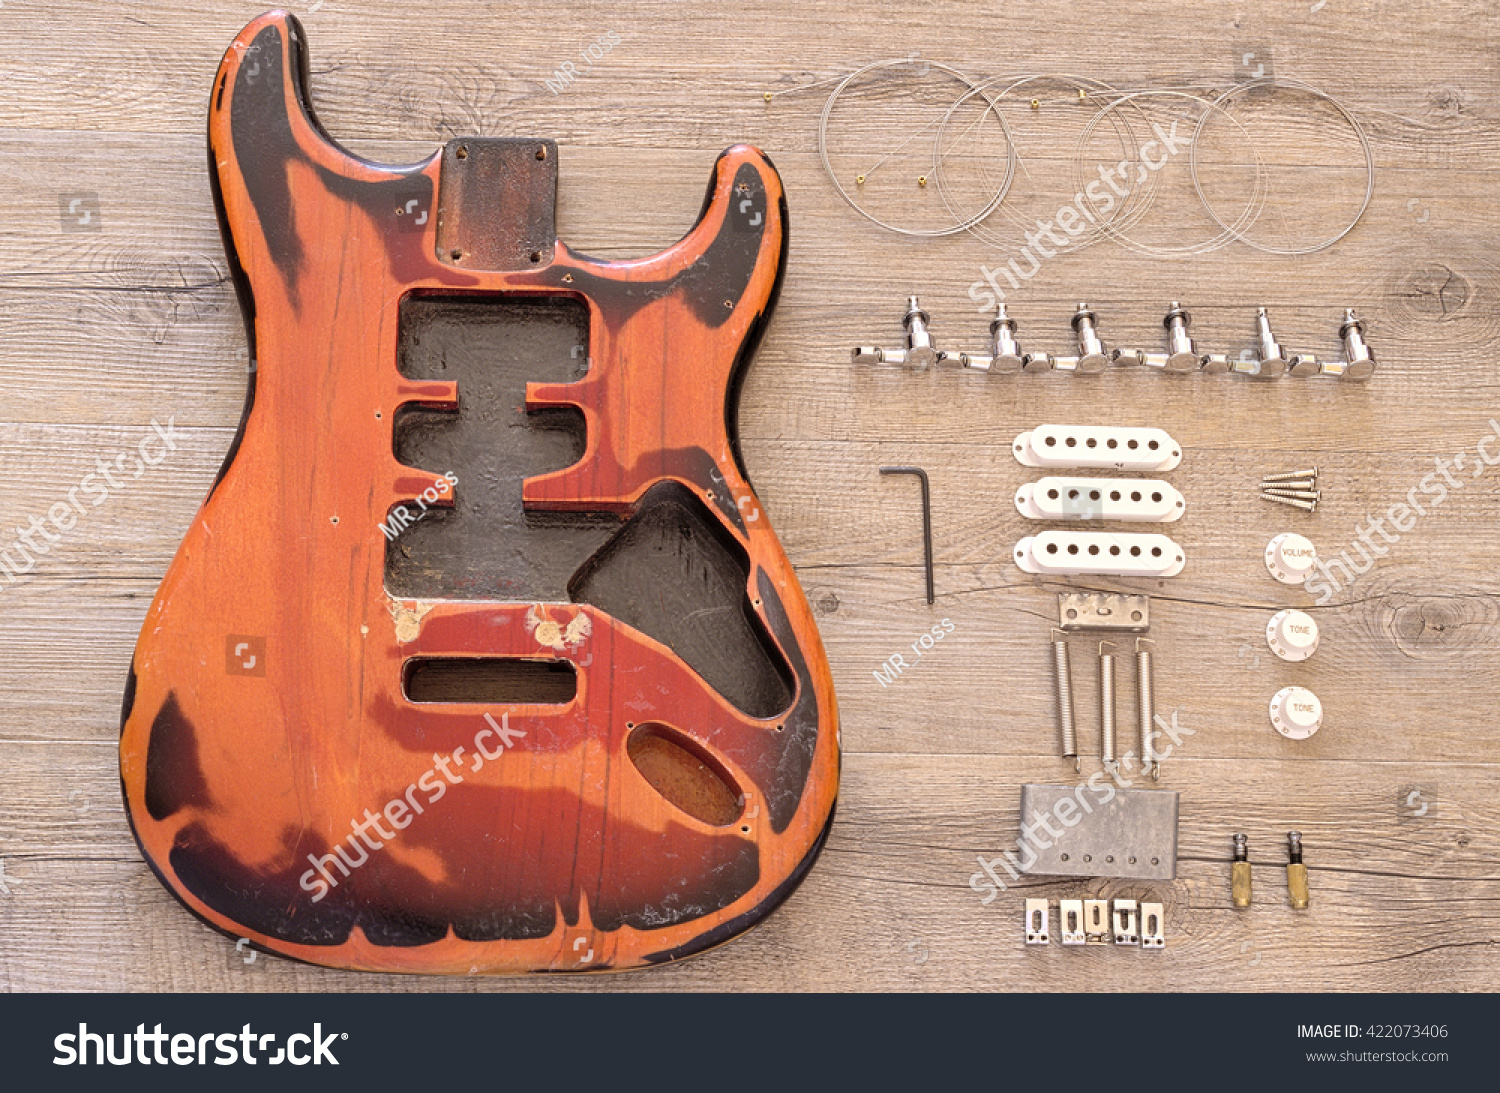 Vintage Electric Guitar Spare Parts Stock Photo Edit Now 422073406 Need To Know The Of